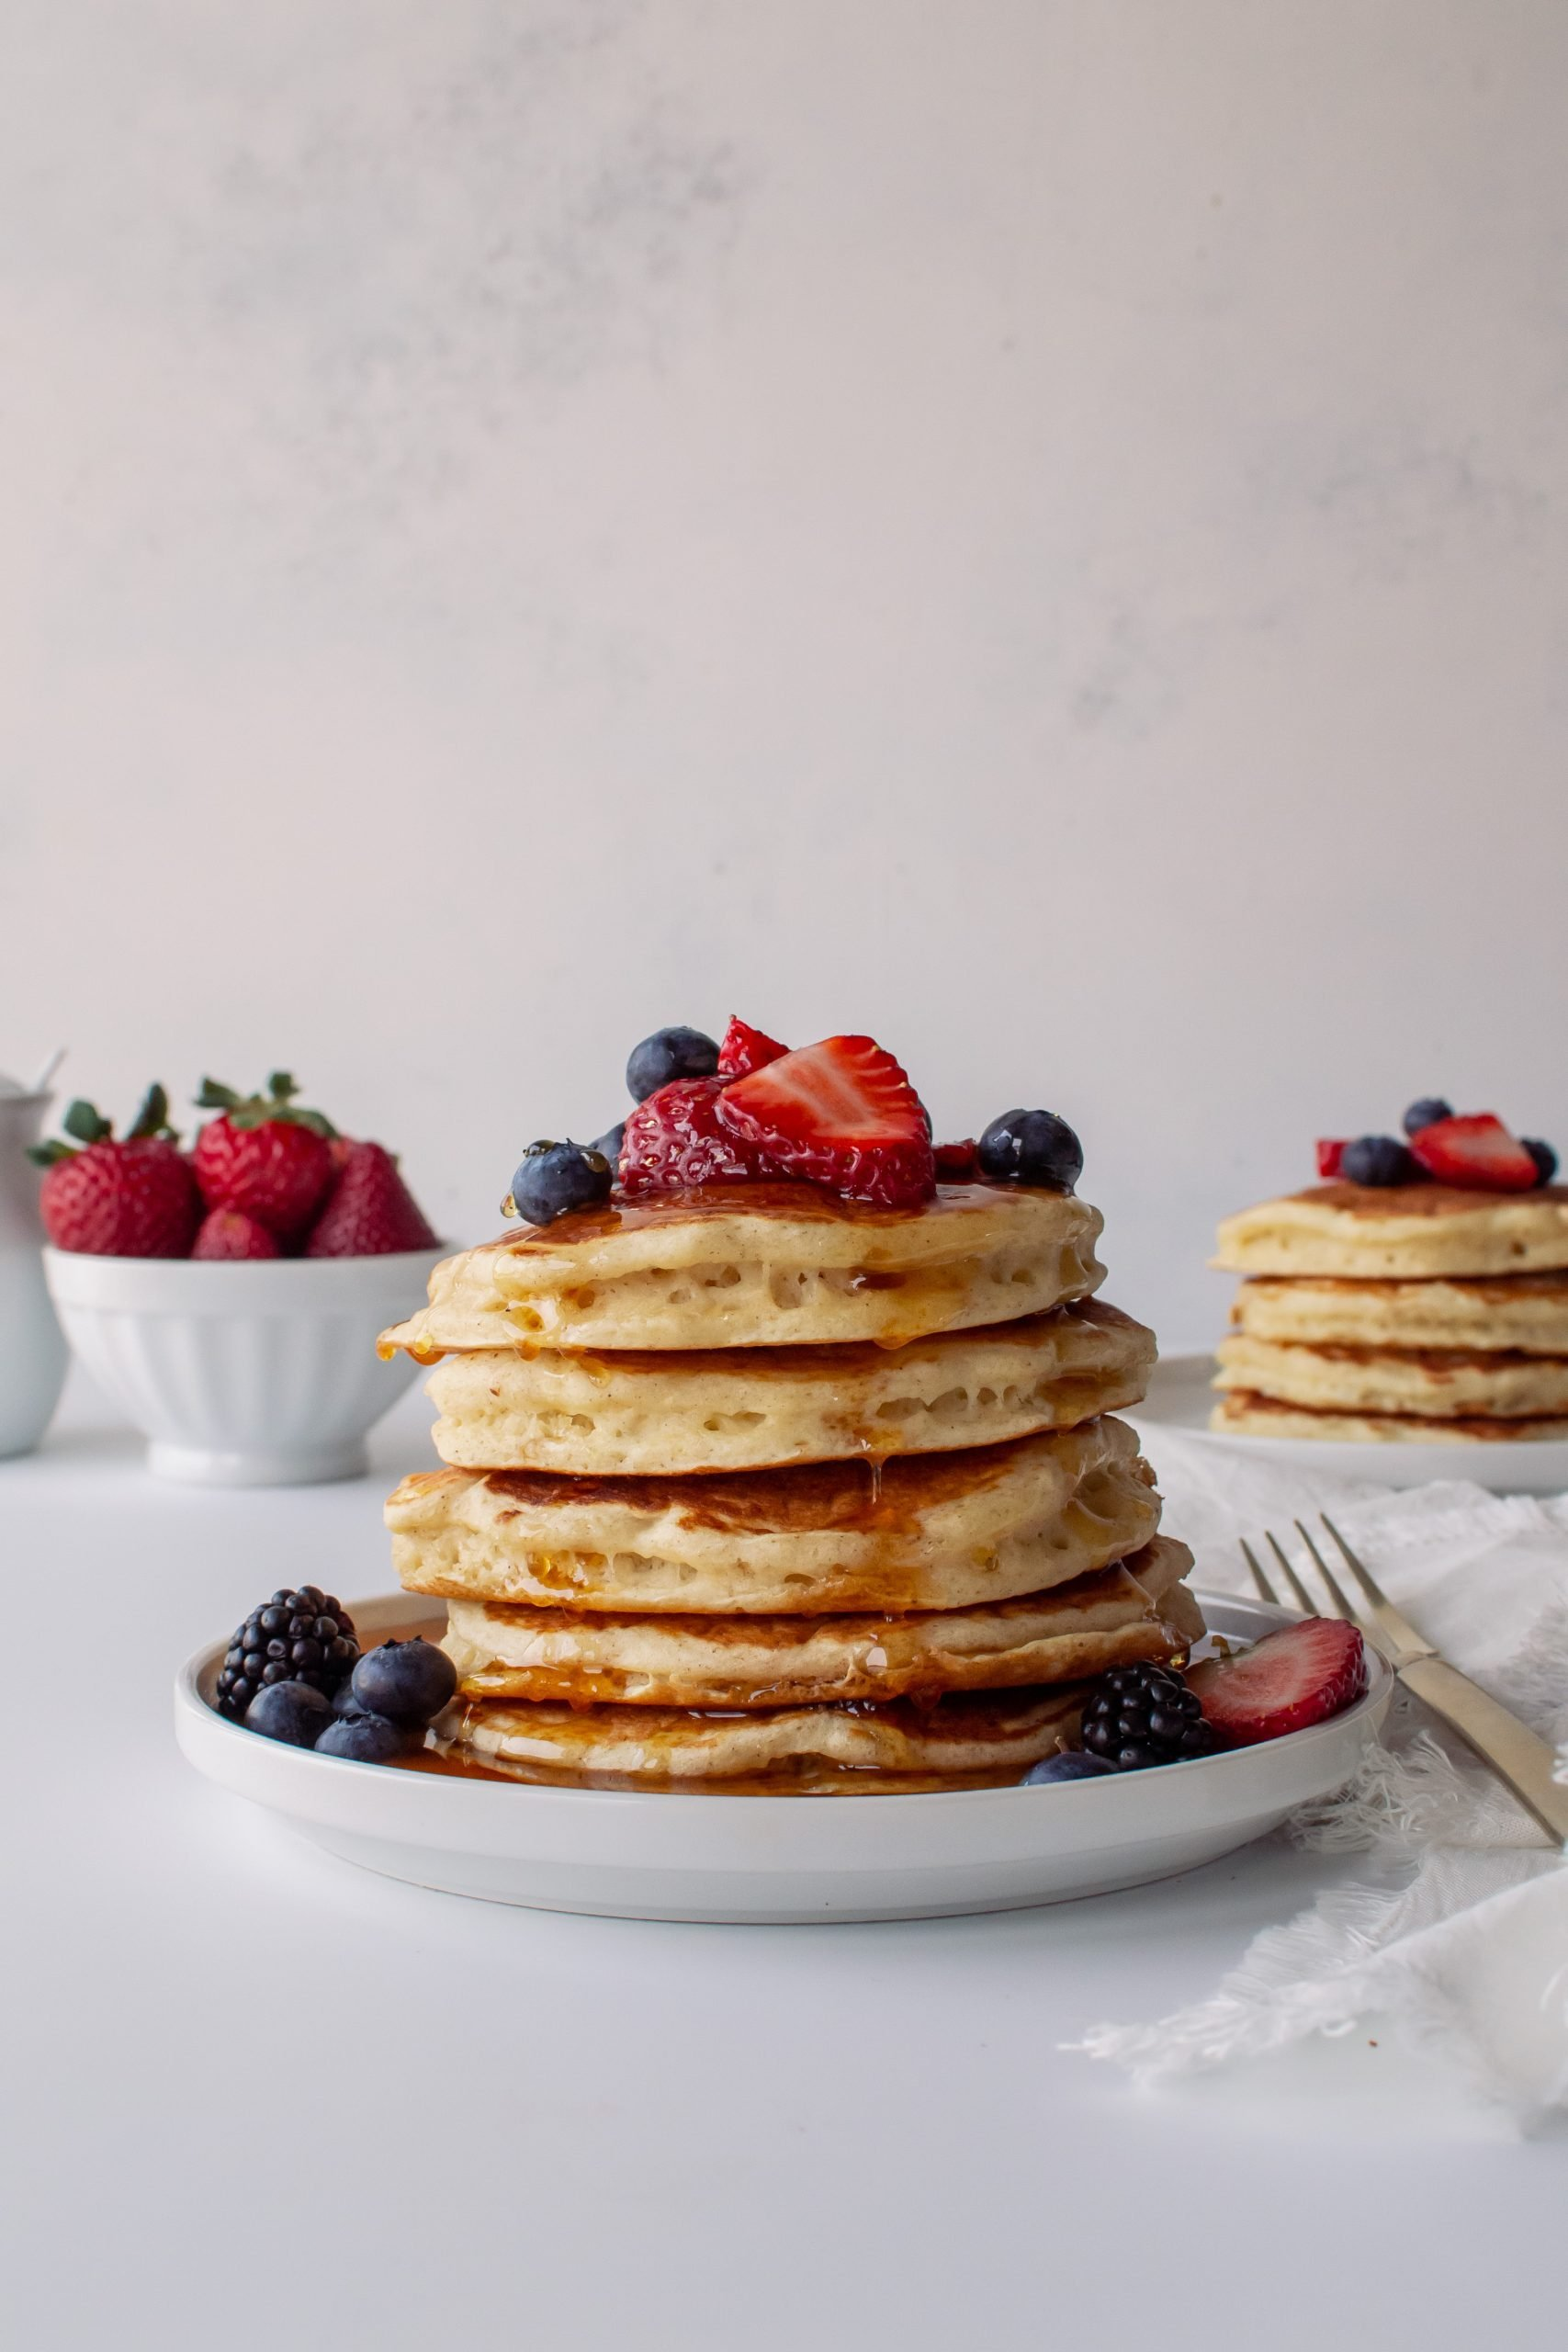 stack of homemade buttermilk pancakes with fresh berries and syrup